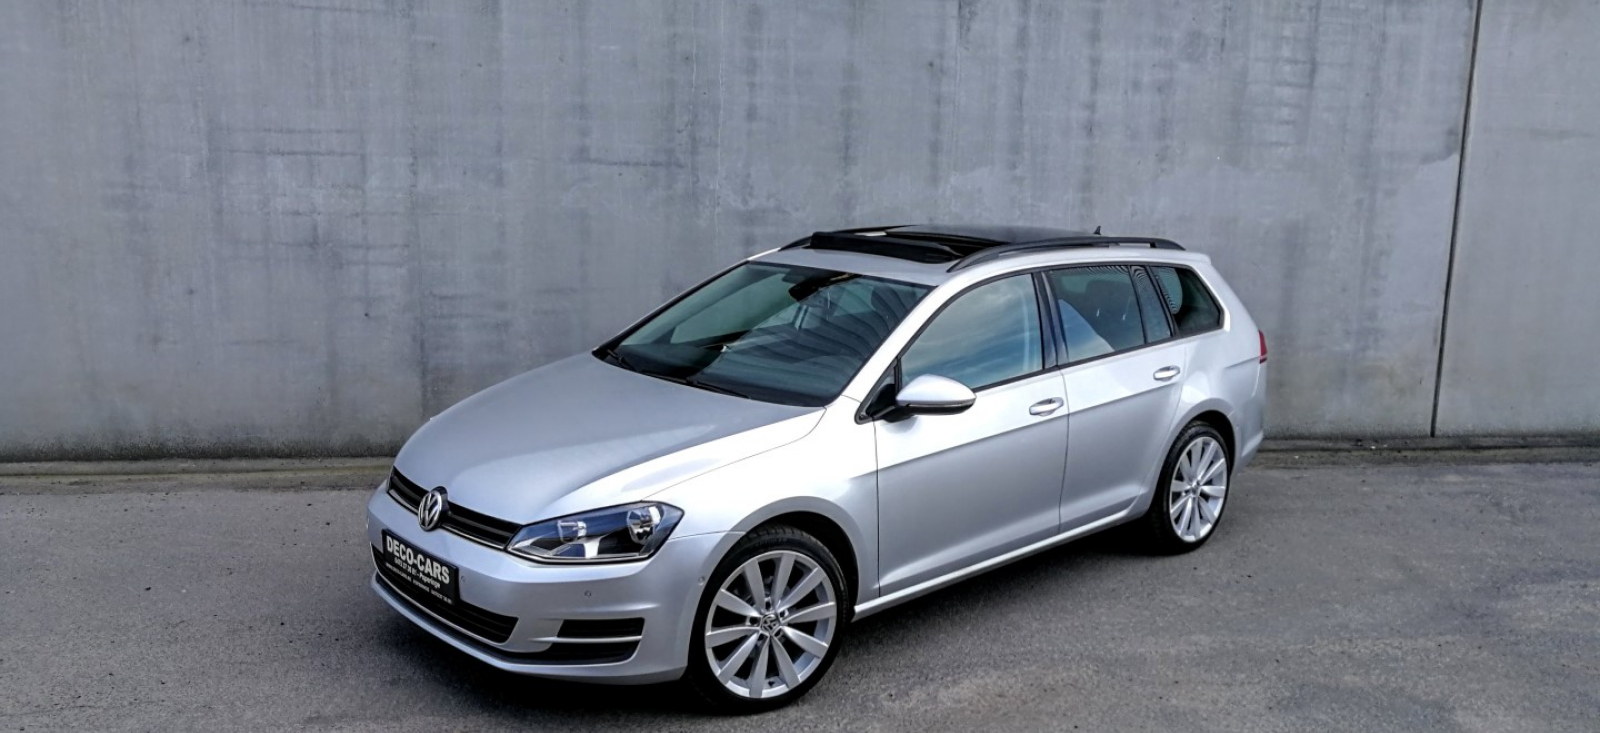 volkswagen golf vii break 1 6 tdi navigatie auto parkeren adaptive cruise panoramisch dak. Black Bedroom Furniture Sets. Home Design Ideas